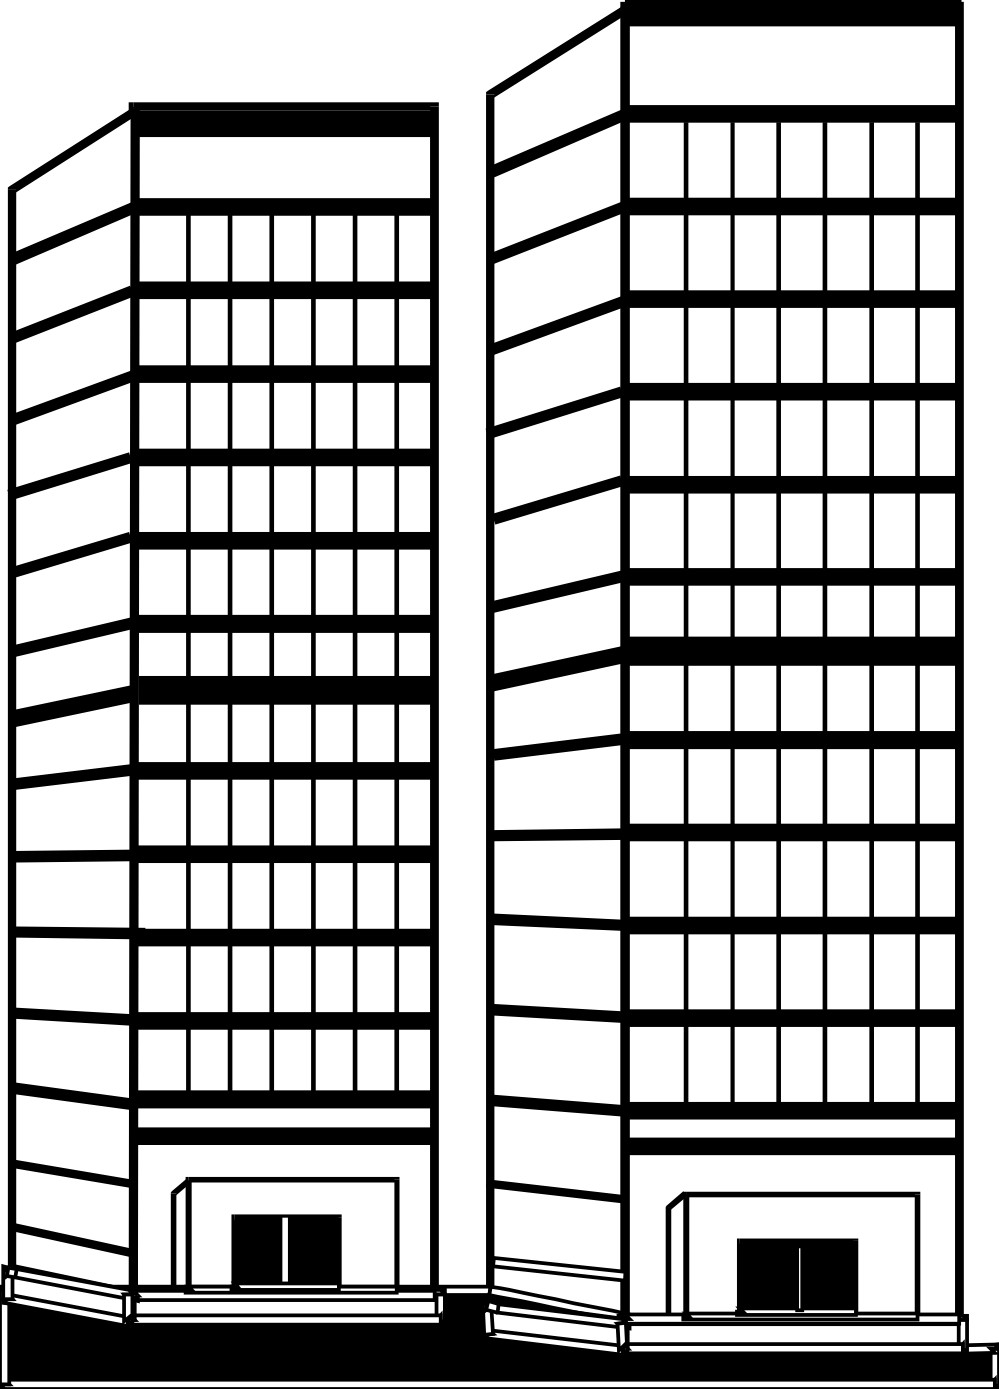 Clipart apartment house image Extraordinary Black And White Apartment Building Clip Art Images ... image